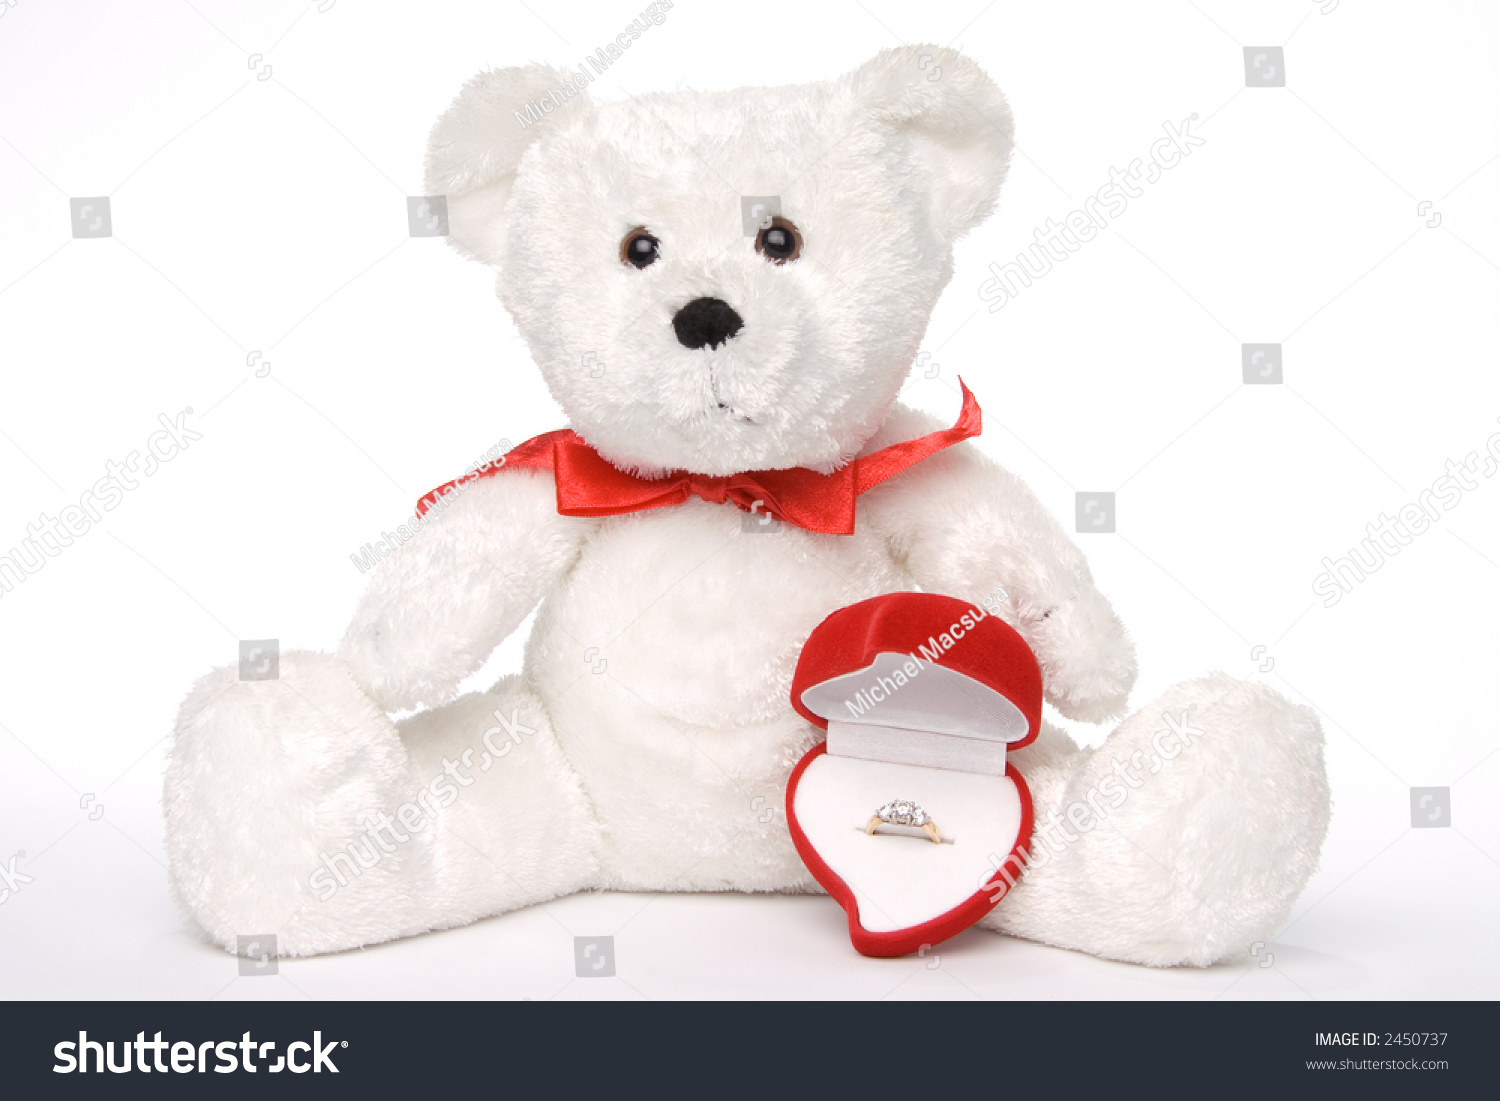 white teddy bears with hearts